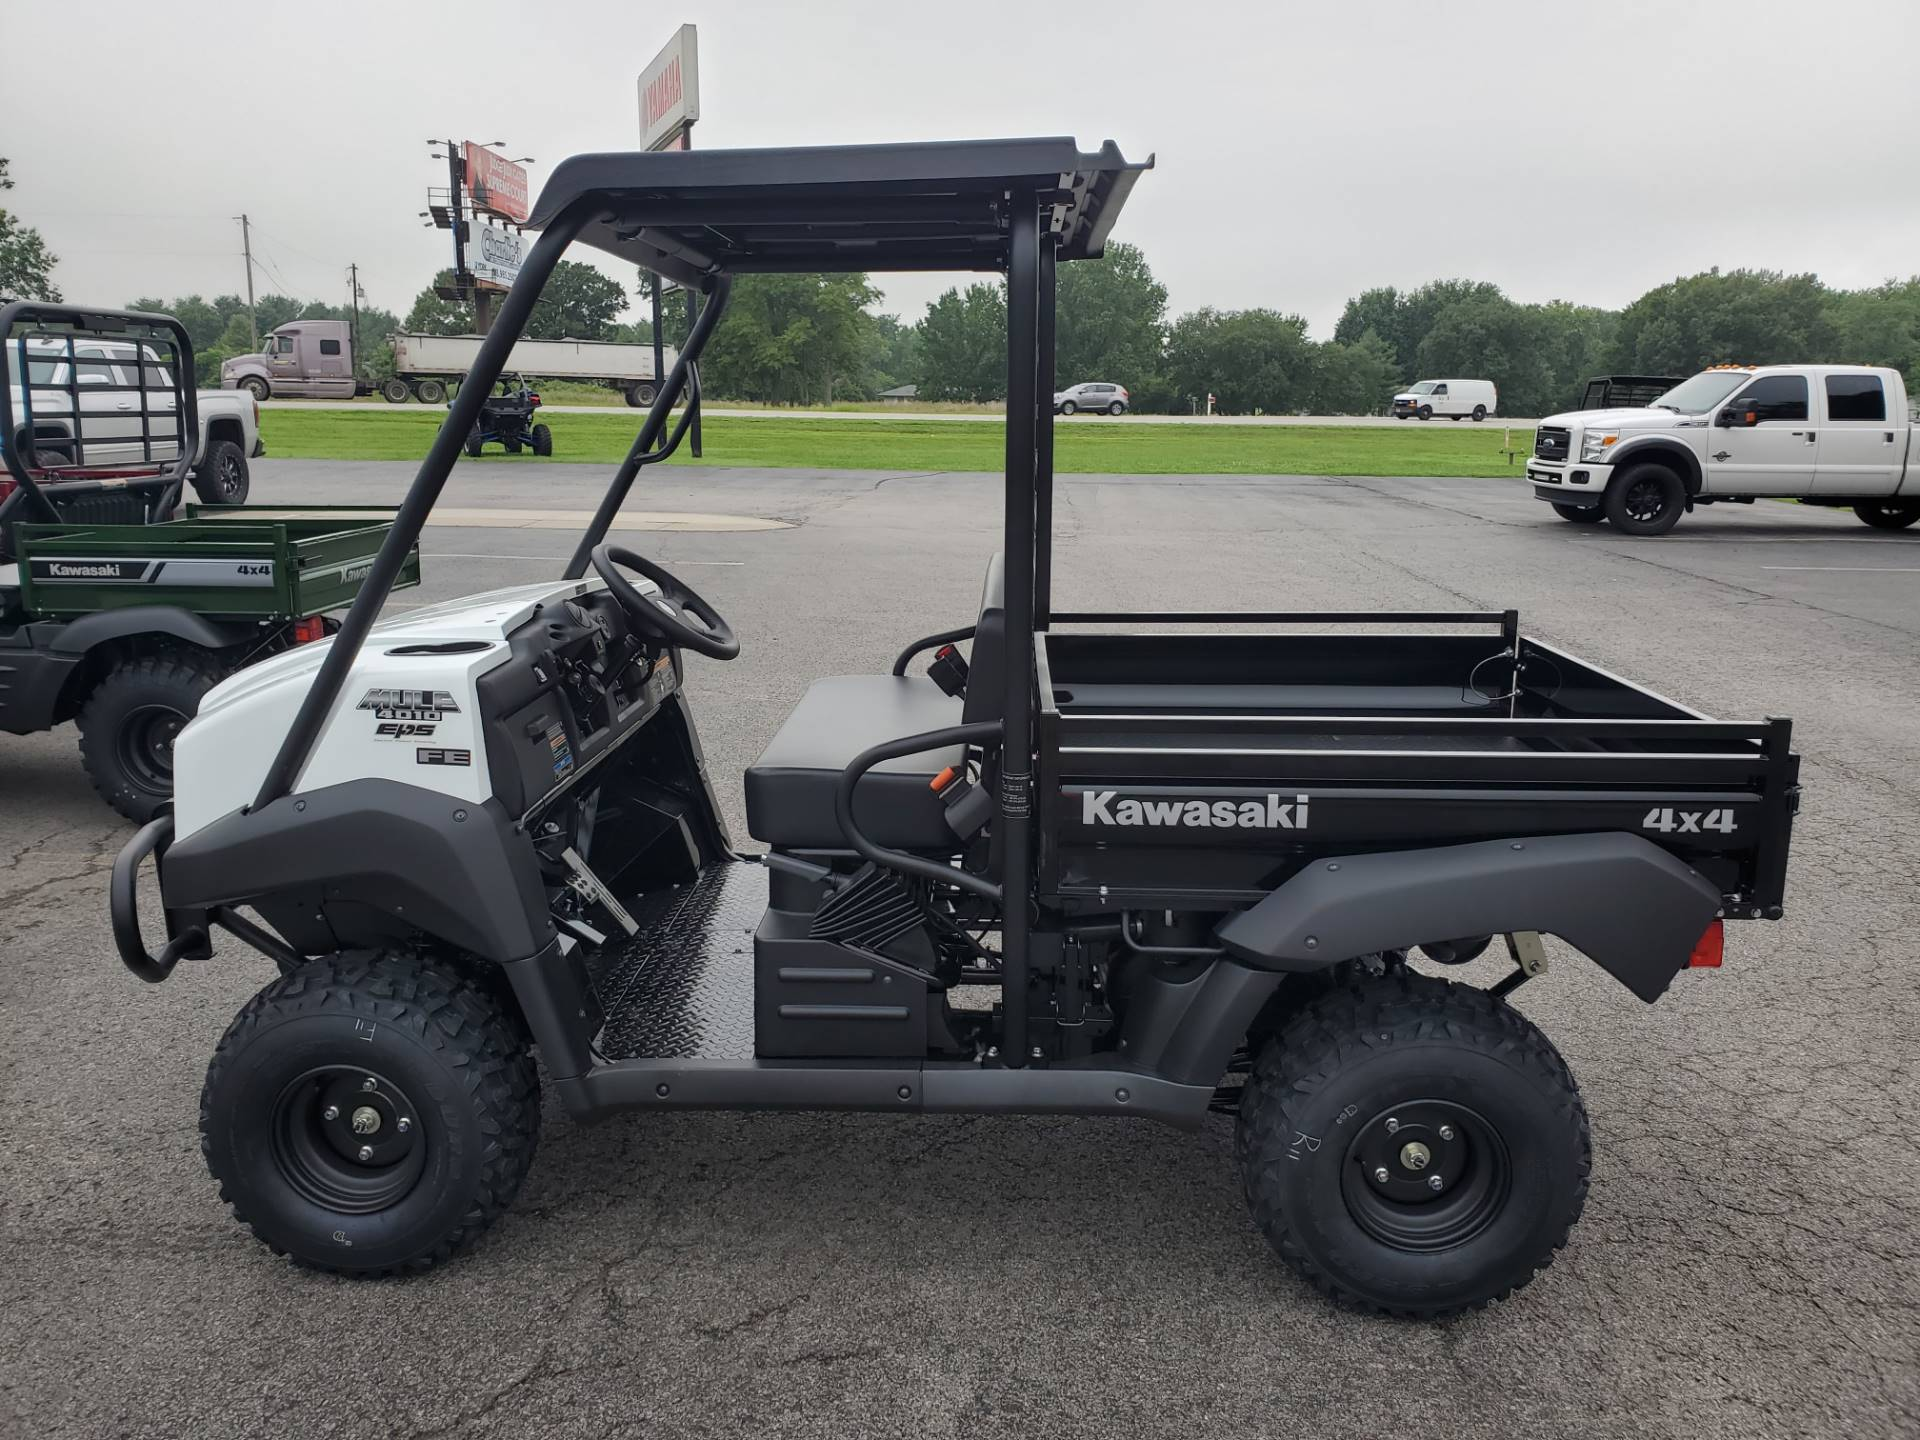 2021 Kawasaki Mule 4010 4x4 FE in Herrin, Illinois - Photo 2